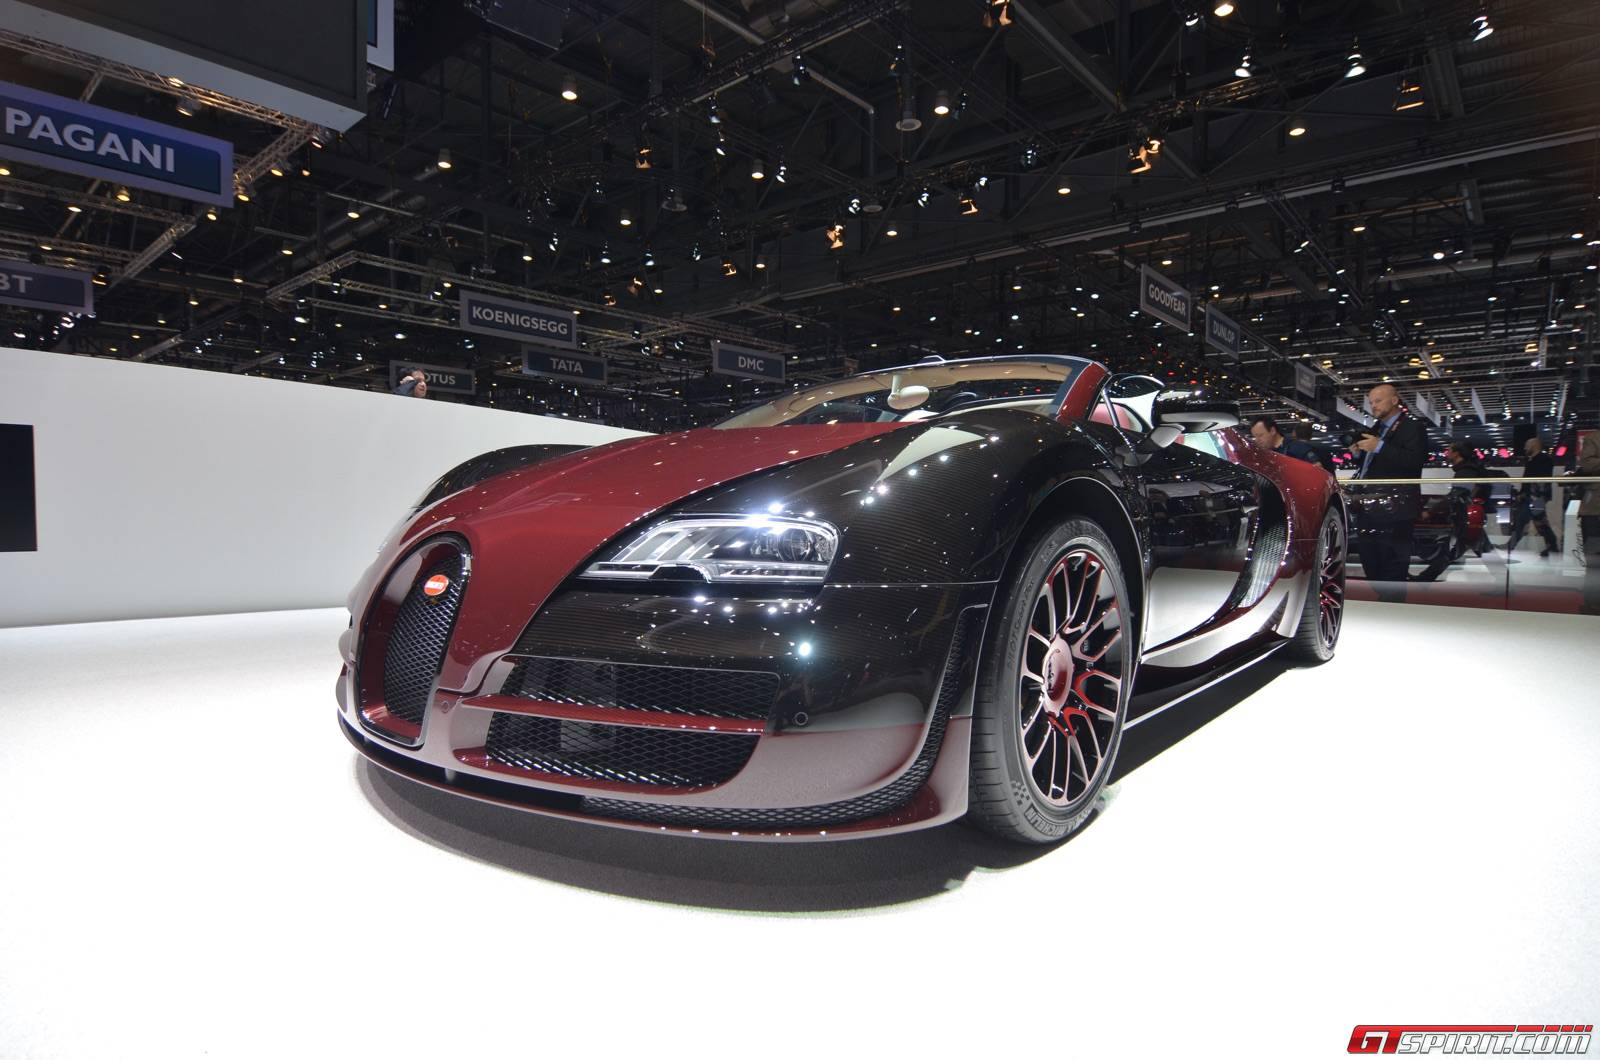 geneva 2015 bugatti veyron grand sport vitesse la finale gtspirit. Black Bedroom Furniture Sets. Home Design Ideas